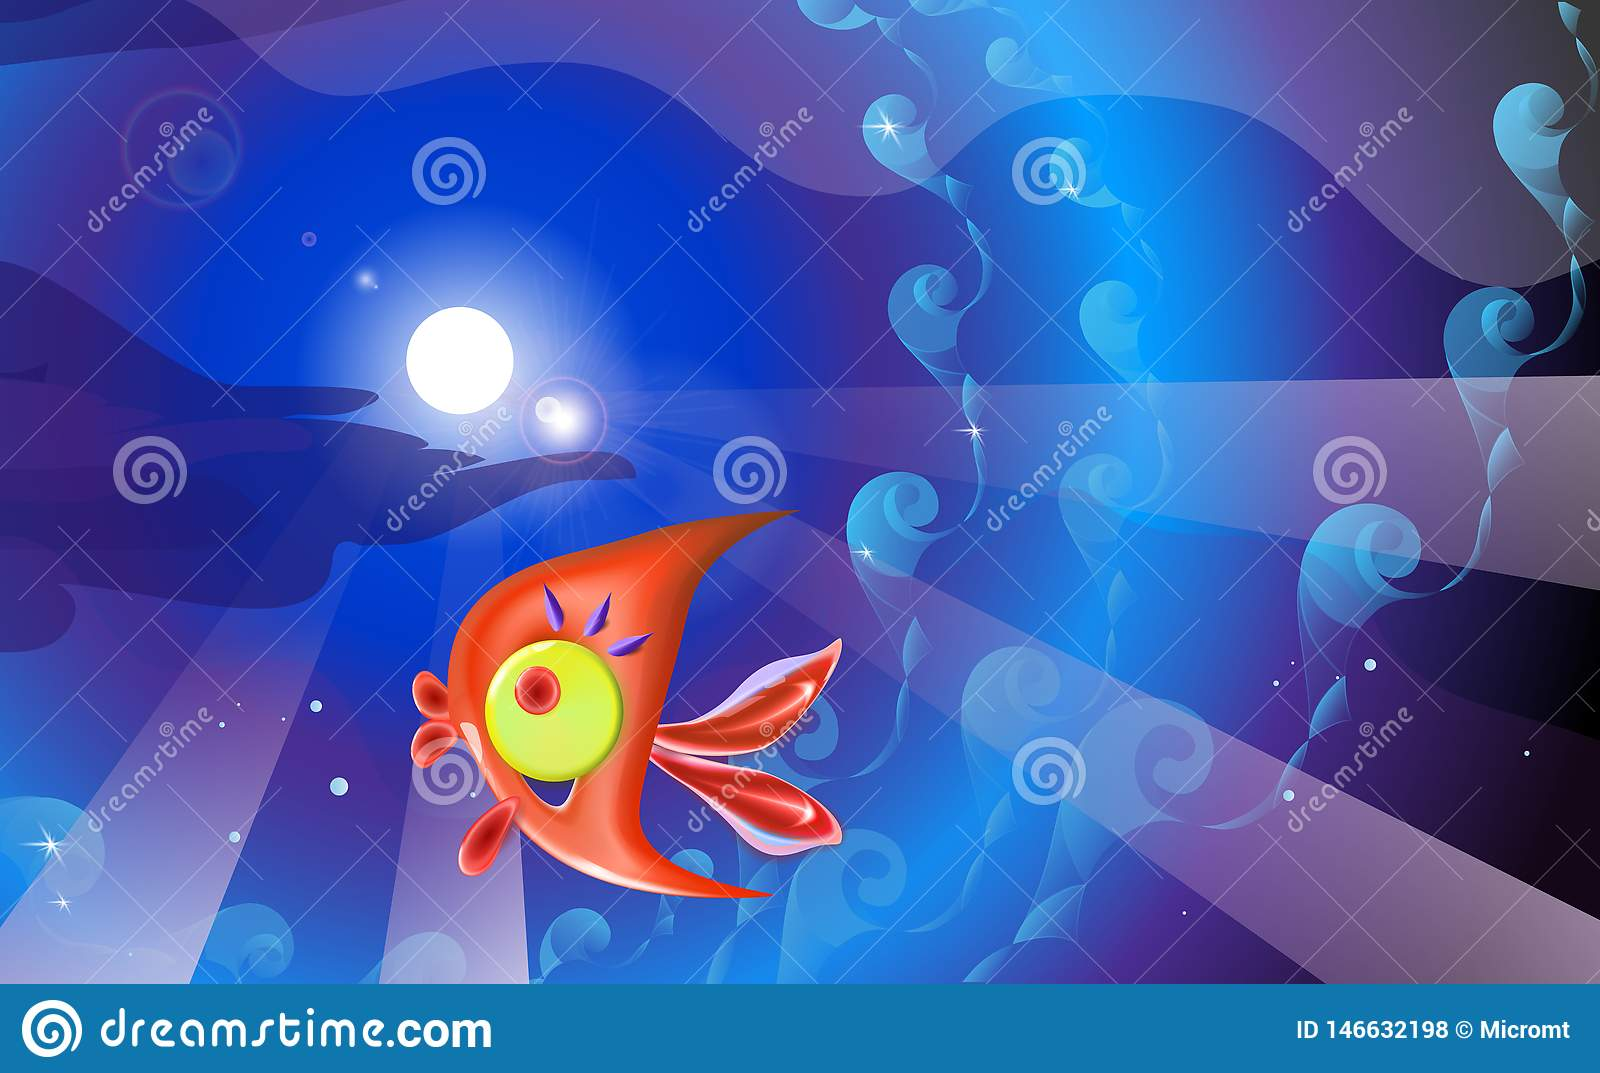 Red plastic toy fish and background in blue tones. Sea coral reef vector illustration of little cartoon funny illustration for